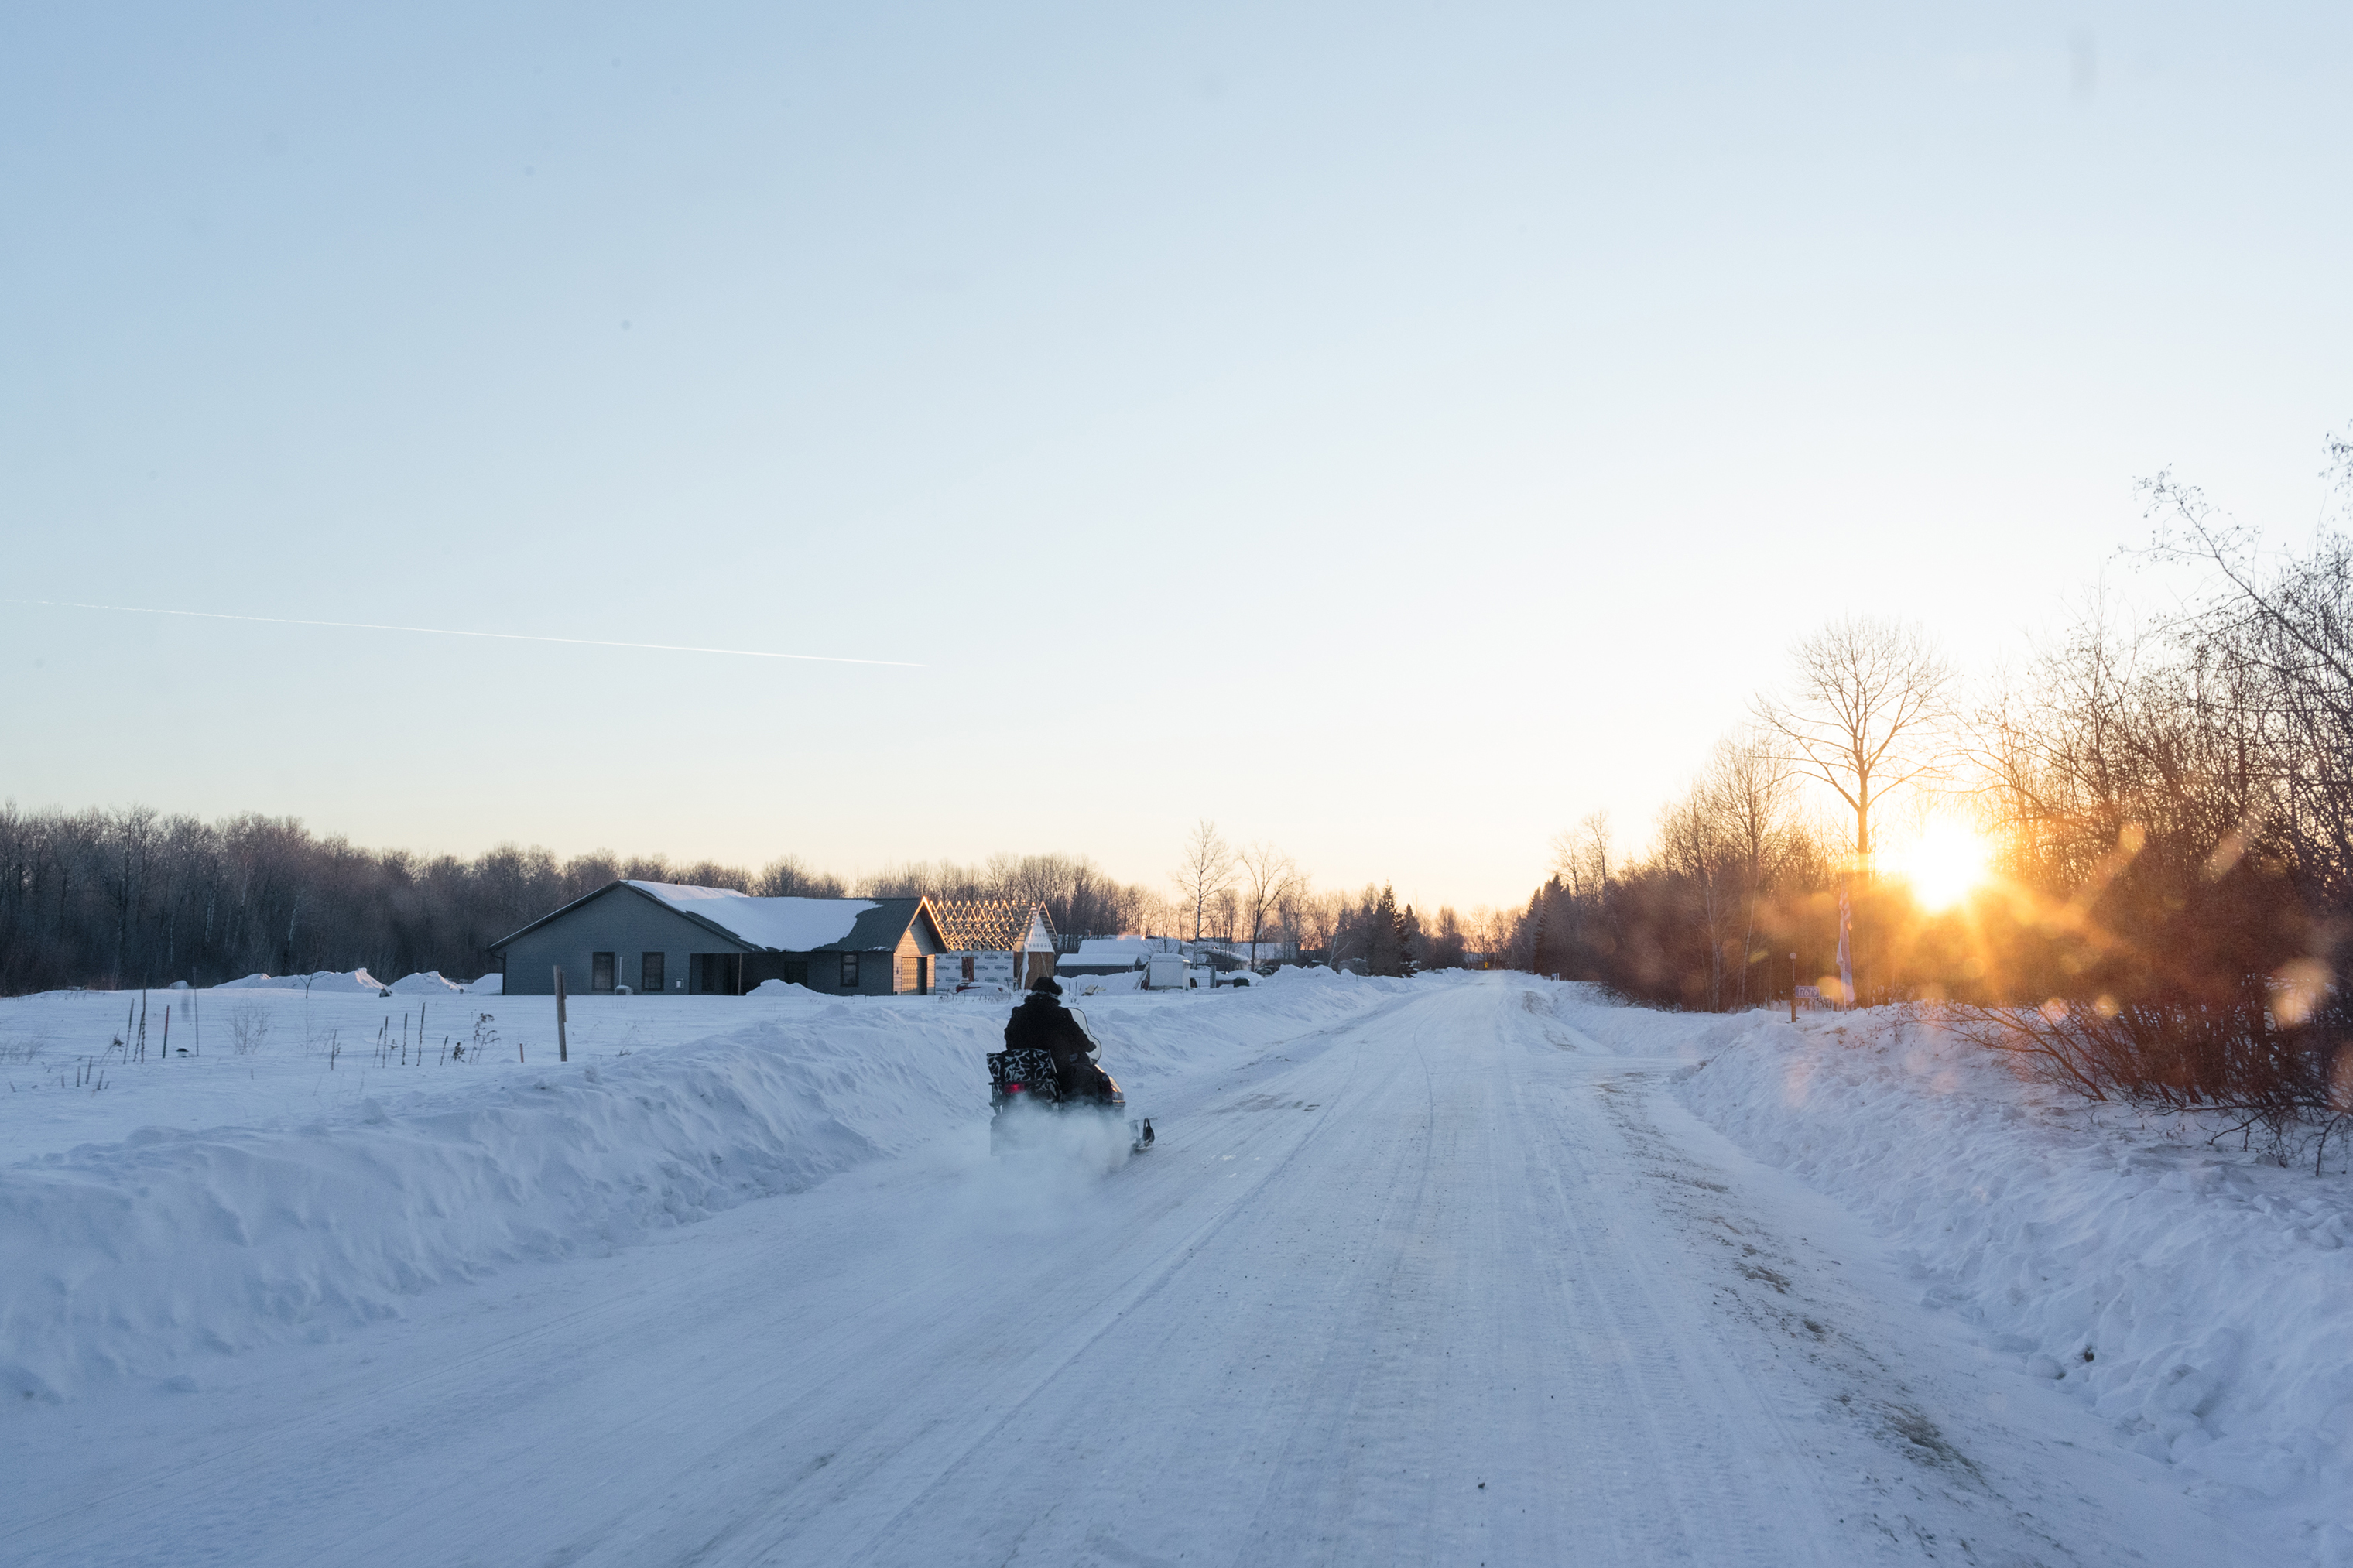 Linda LaMie commutes to school at 6:30 in the morning, in -20 degree weather, and has been the teacher at the one room schoolhouse in Angle Inlet for over thirty years.